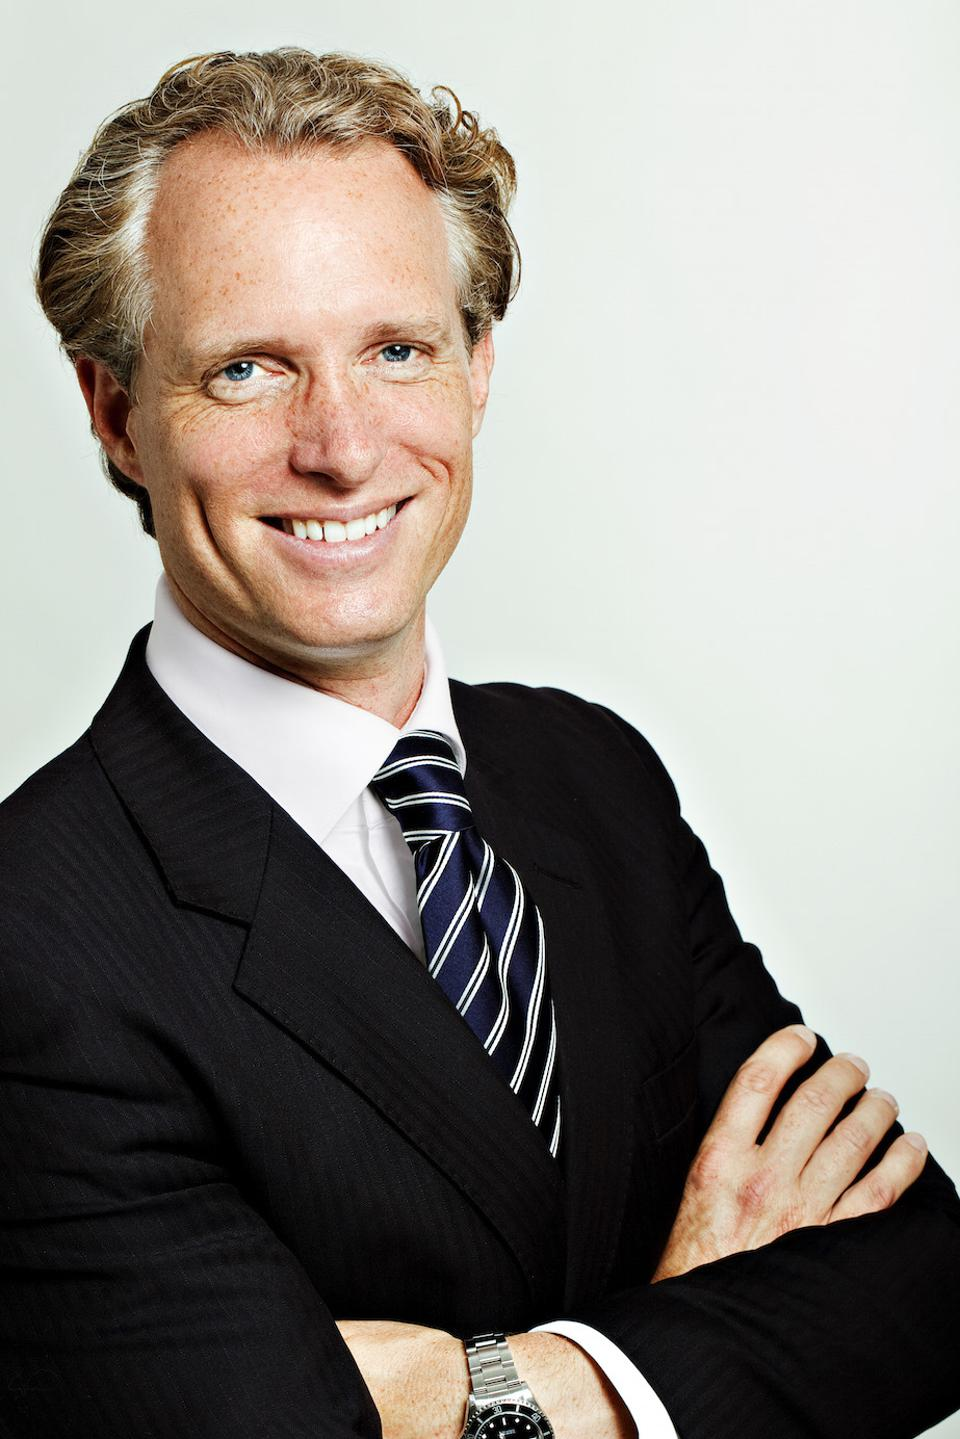 Michael Patrick Struck, CEO of Germany's Ruby Hotels